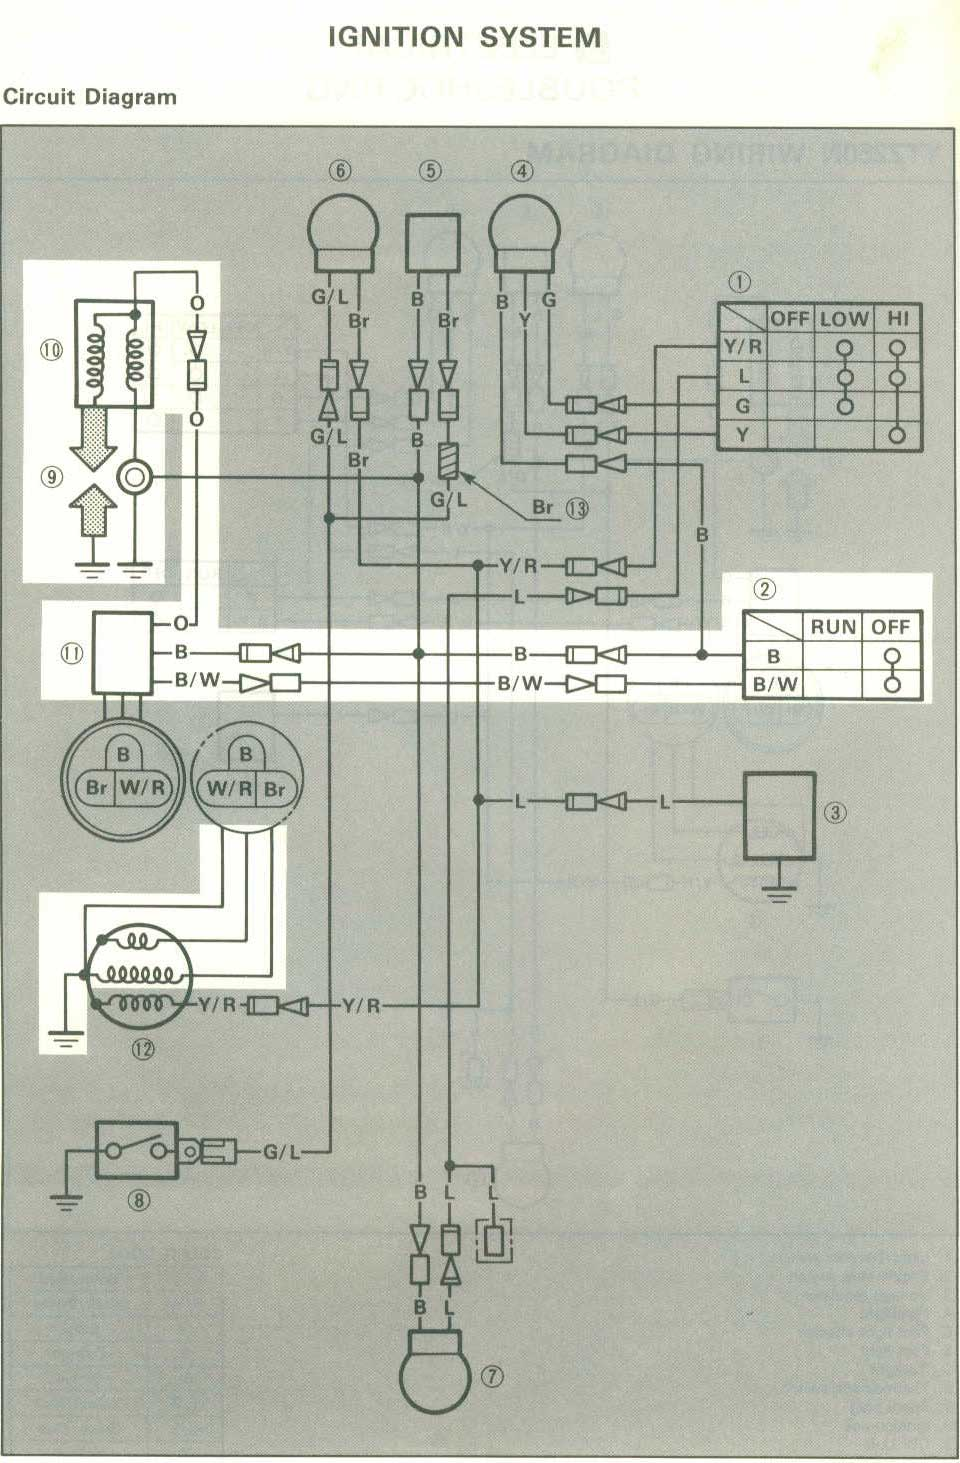 3 Wheeler World Tech Help Yamaha Wiring Diagrams Polaris 800 Atv Tri Z Ytz250n 1985